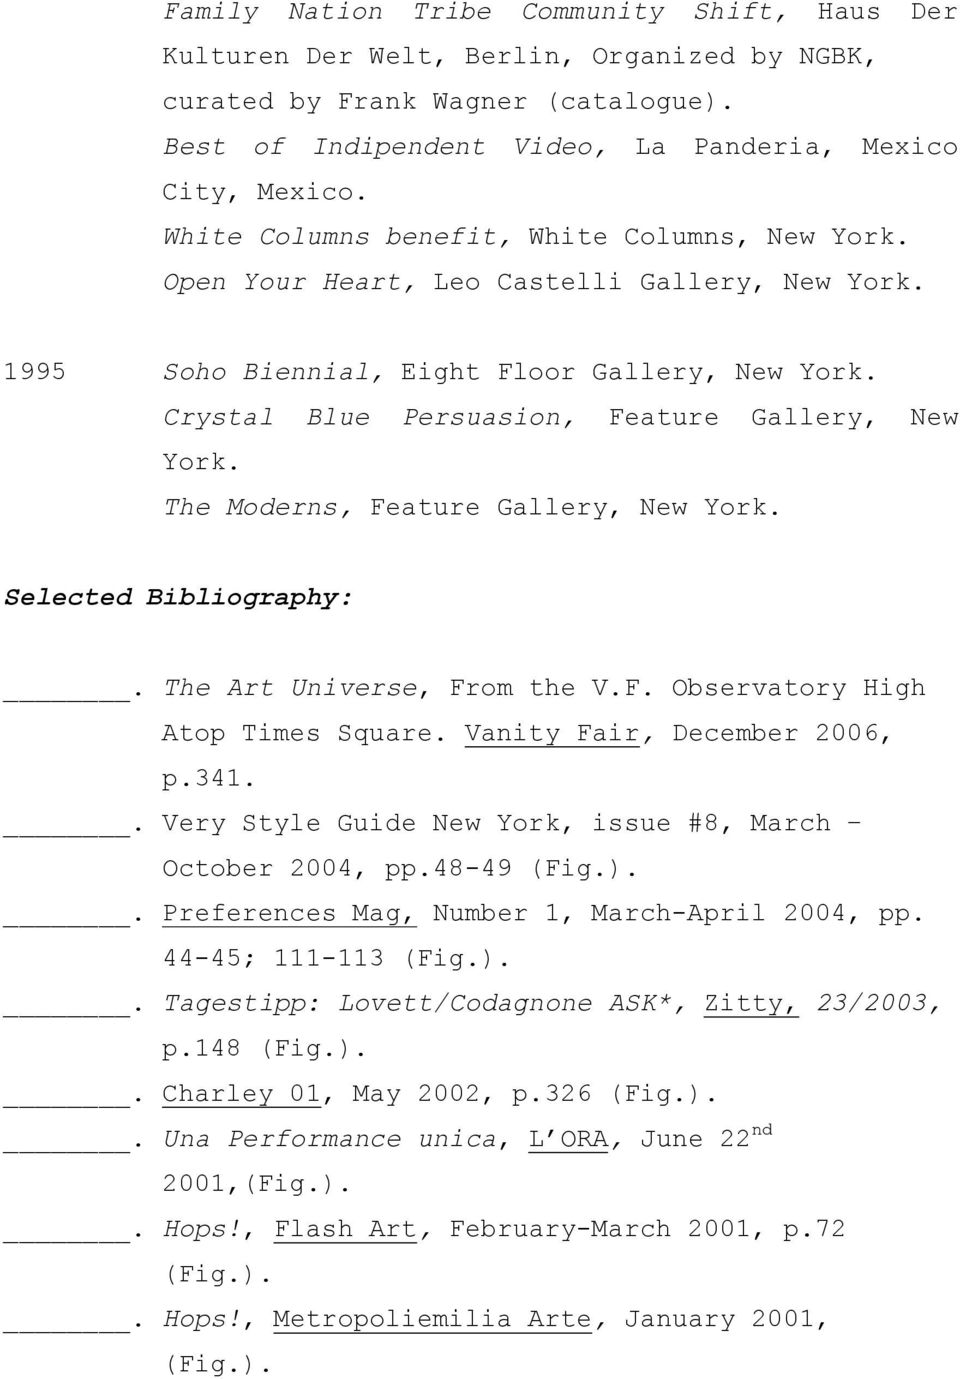 The Moderns, Feature Gallery, New York. Selected Bibliography:. The Art Universe, From the V.F. Observatory High Atop Times Square. Vanity Fair, December 2006, p.341.